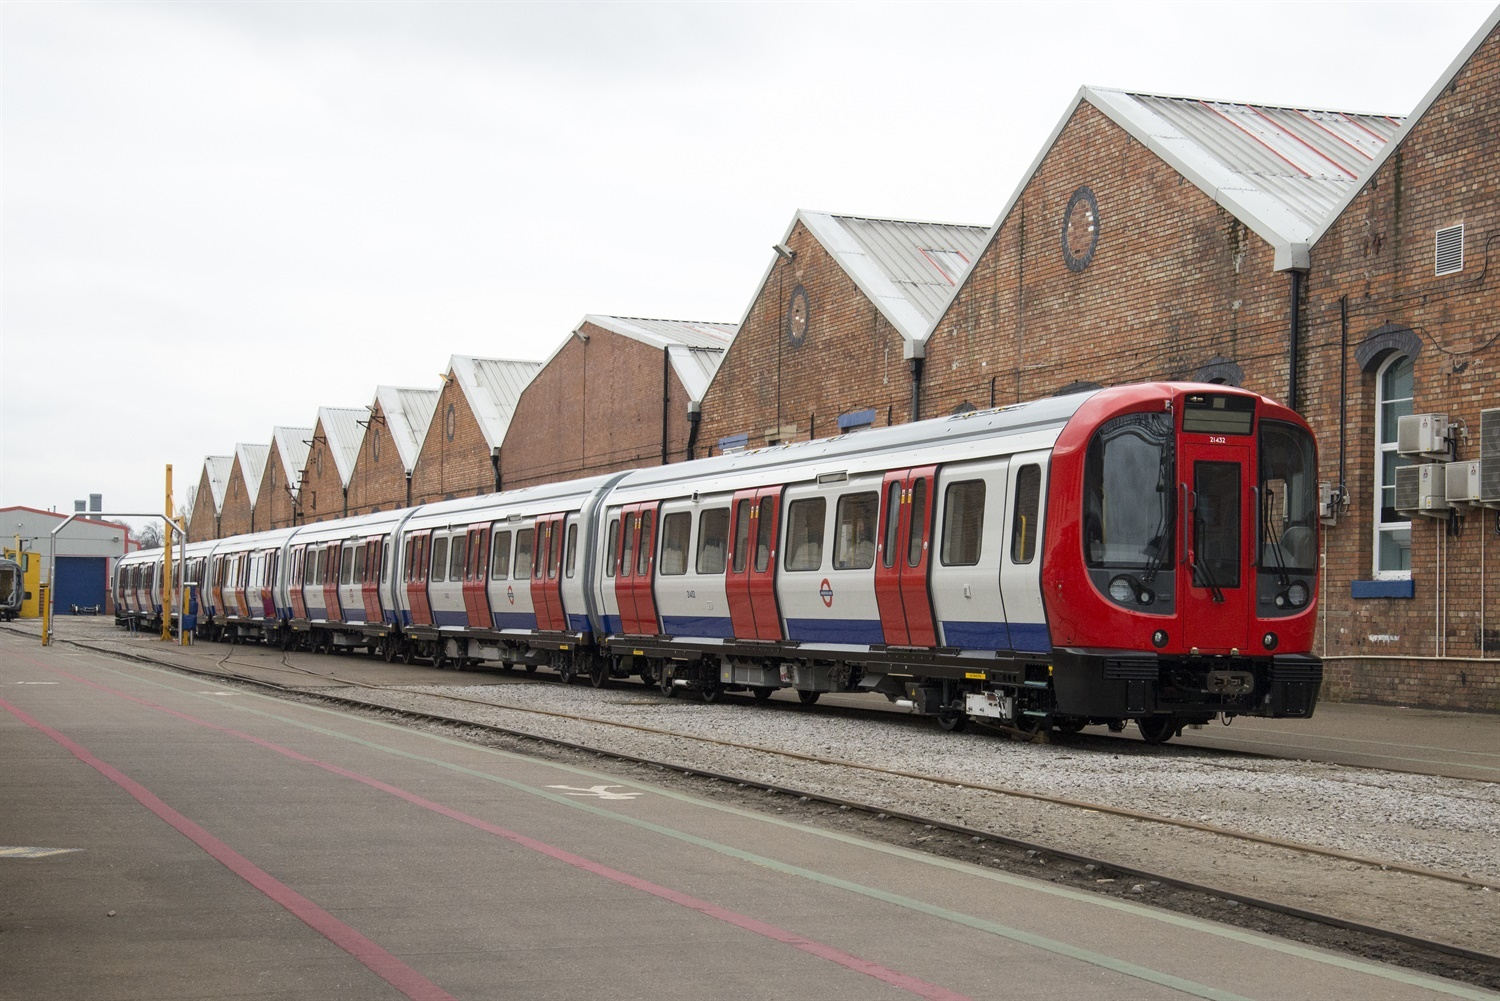 Bombardier delivers last of 191 S-Stock Tube trains